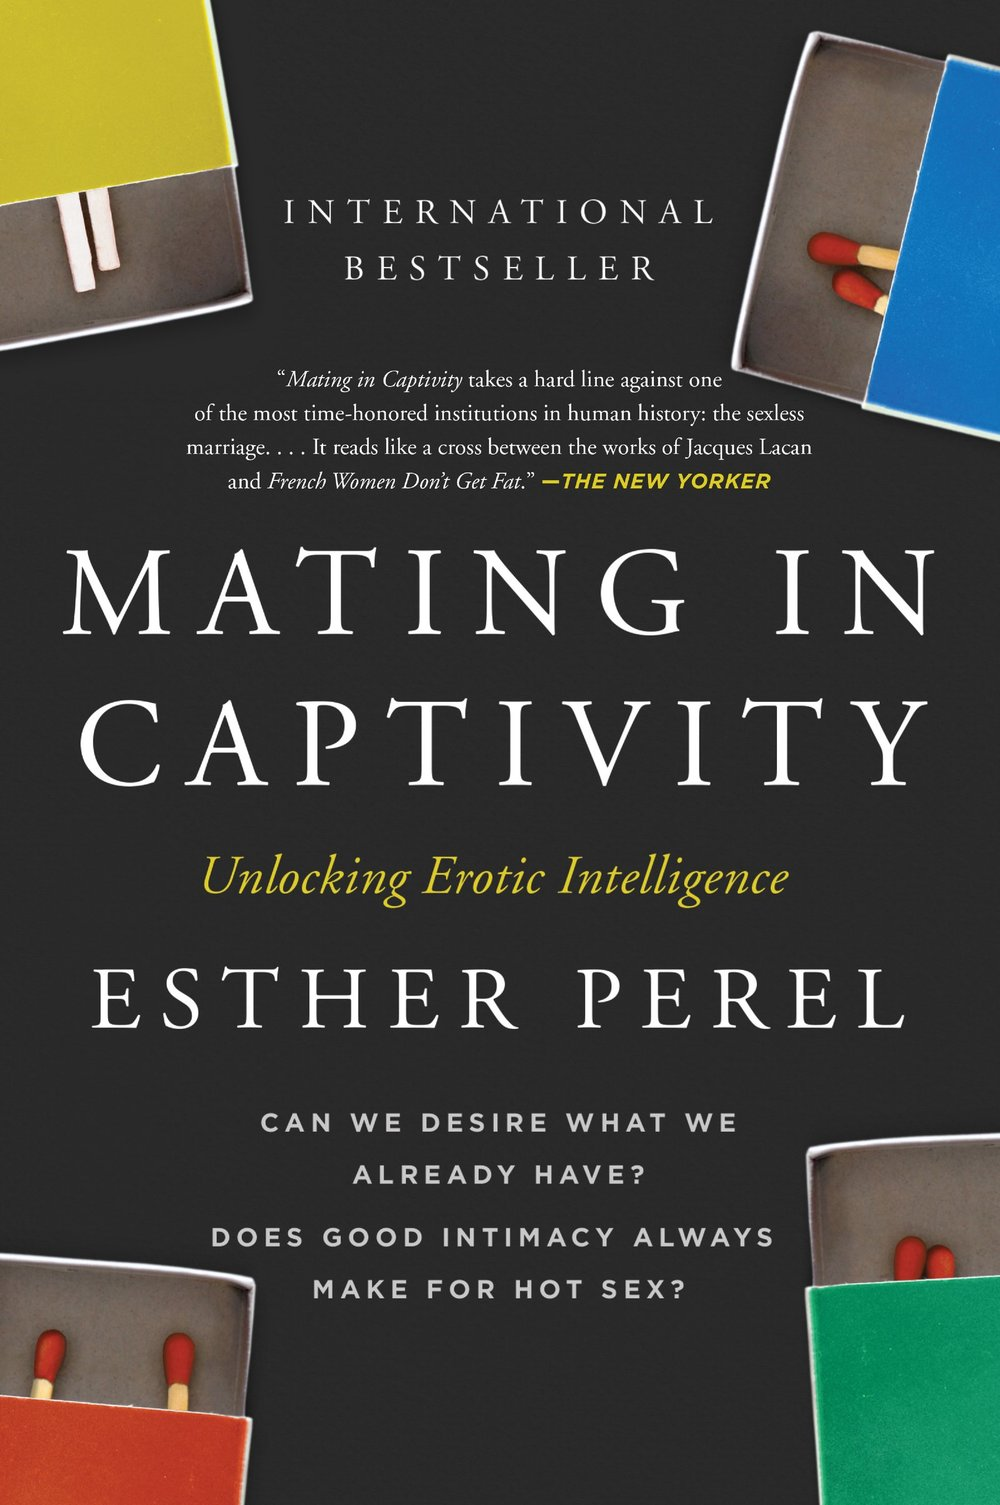 Practically Married : Mating in Captivity: Unlocking Erotic Intelligence